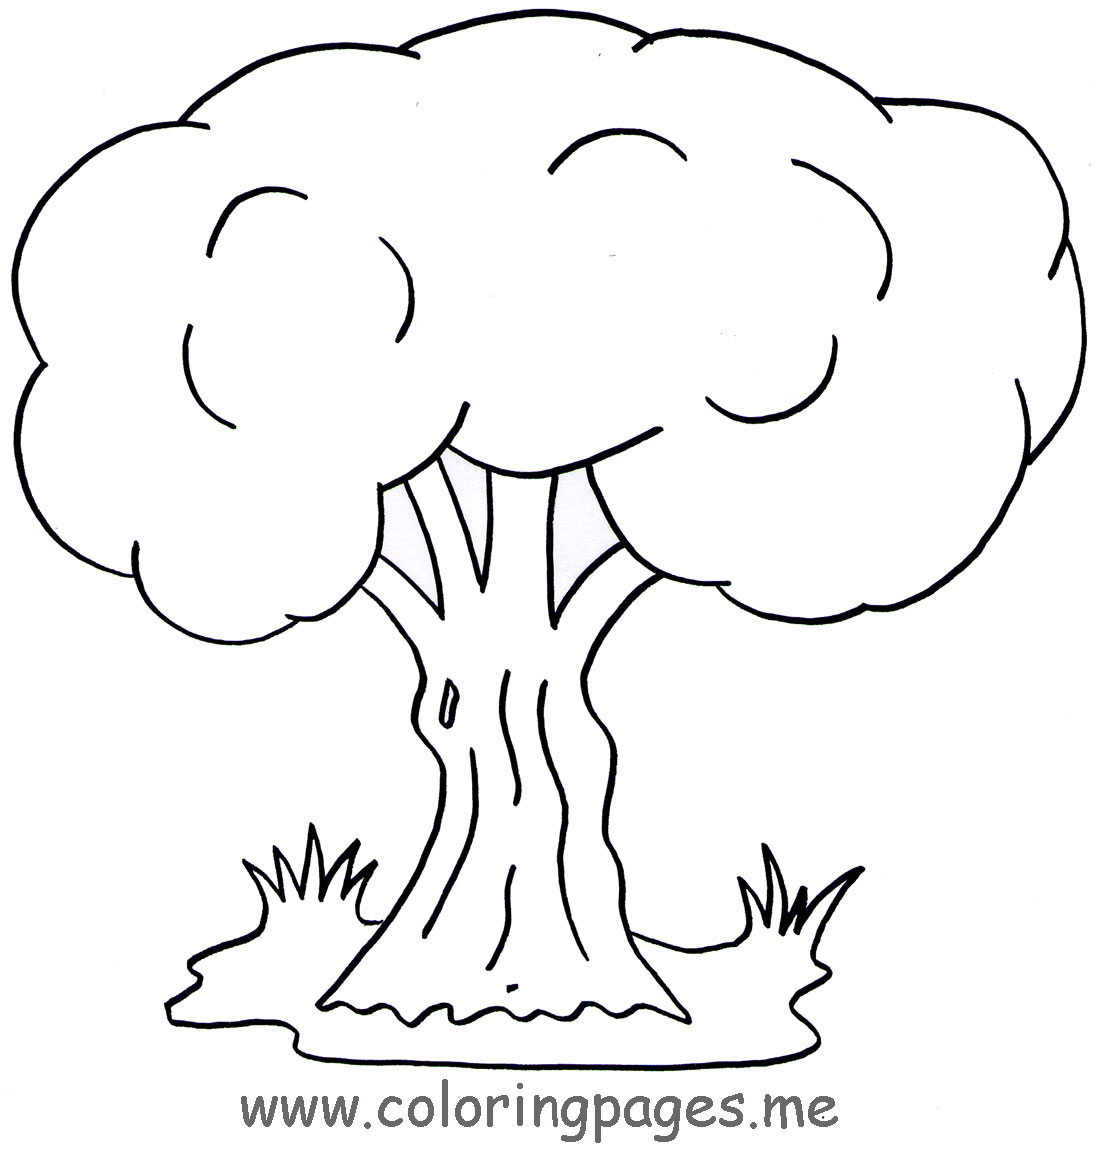 66 dessins de coloriage arbre imprimer sur page 2. Black Bedroom Furniture Sets. Home Design Ideas